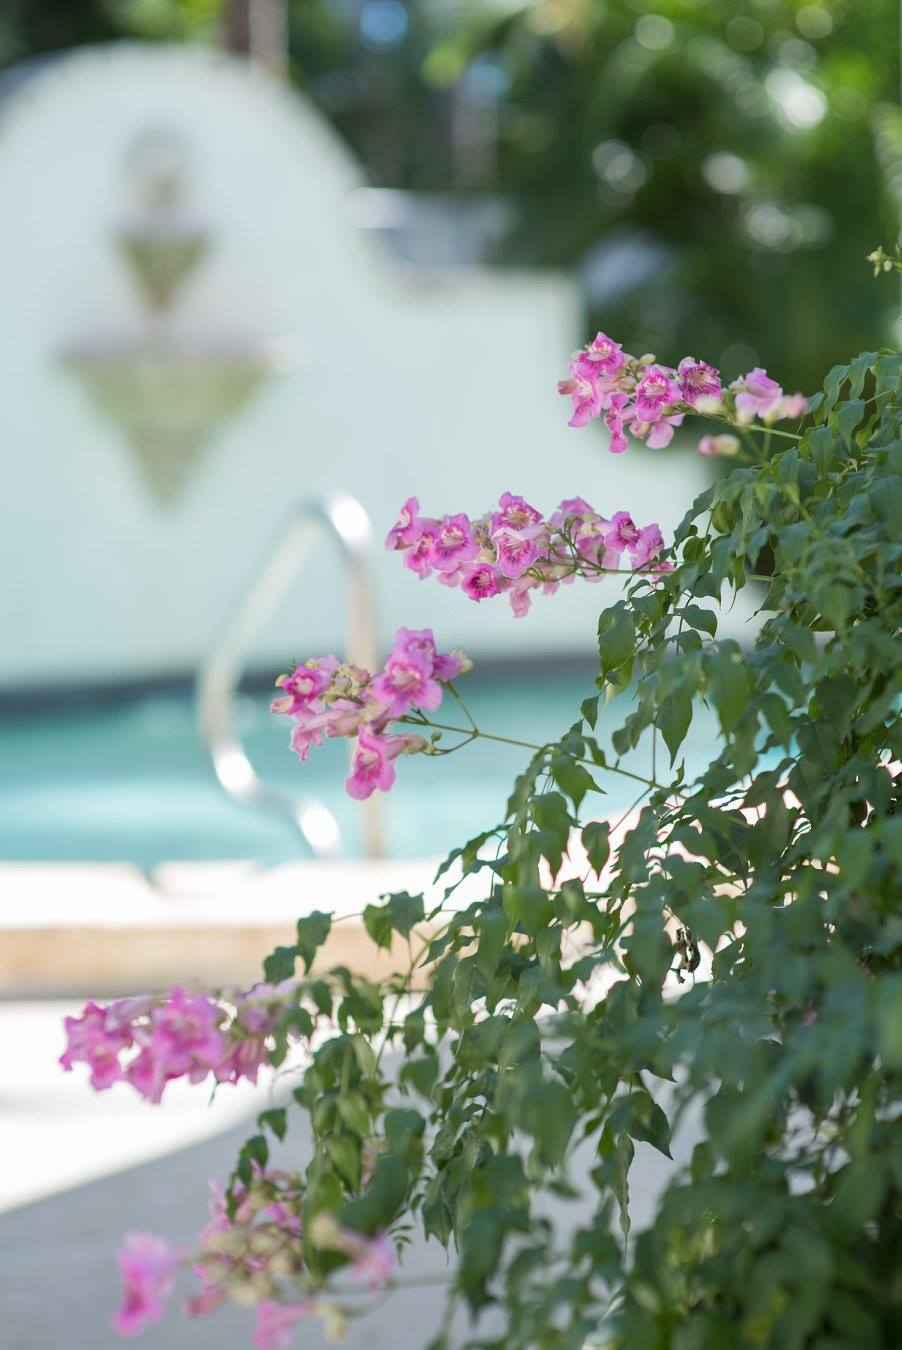 flower with burred pool in background